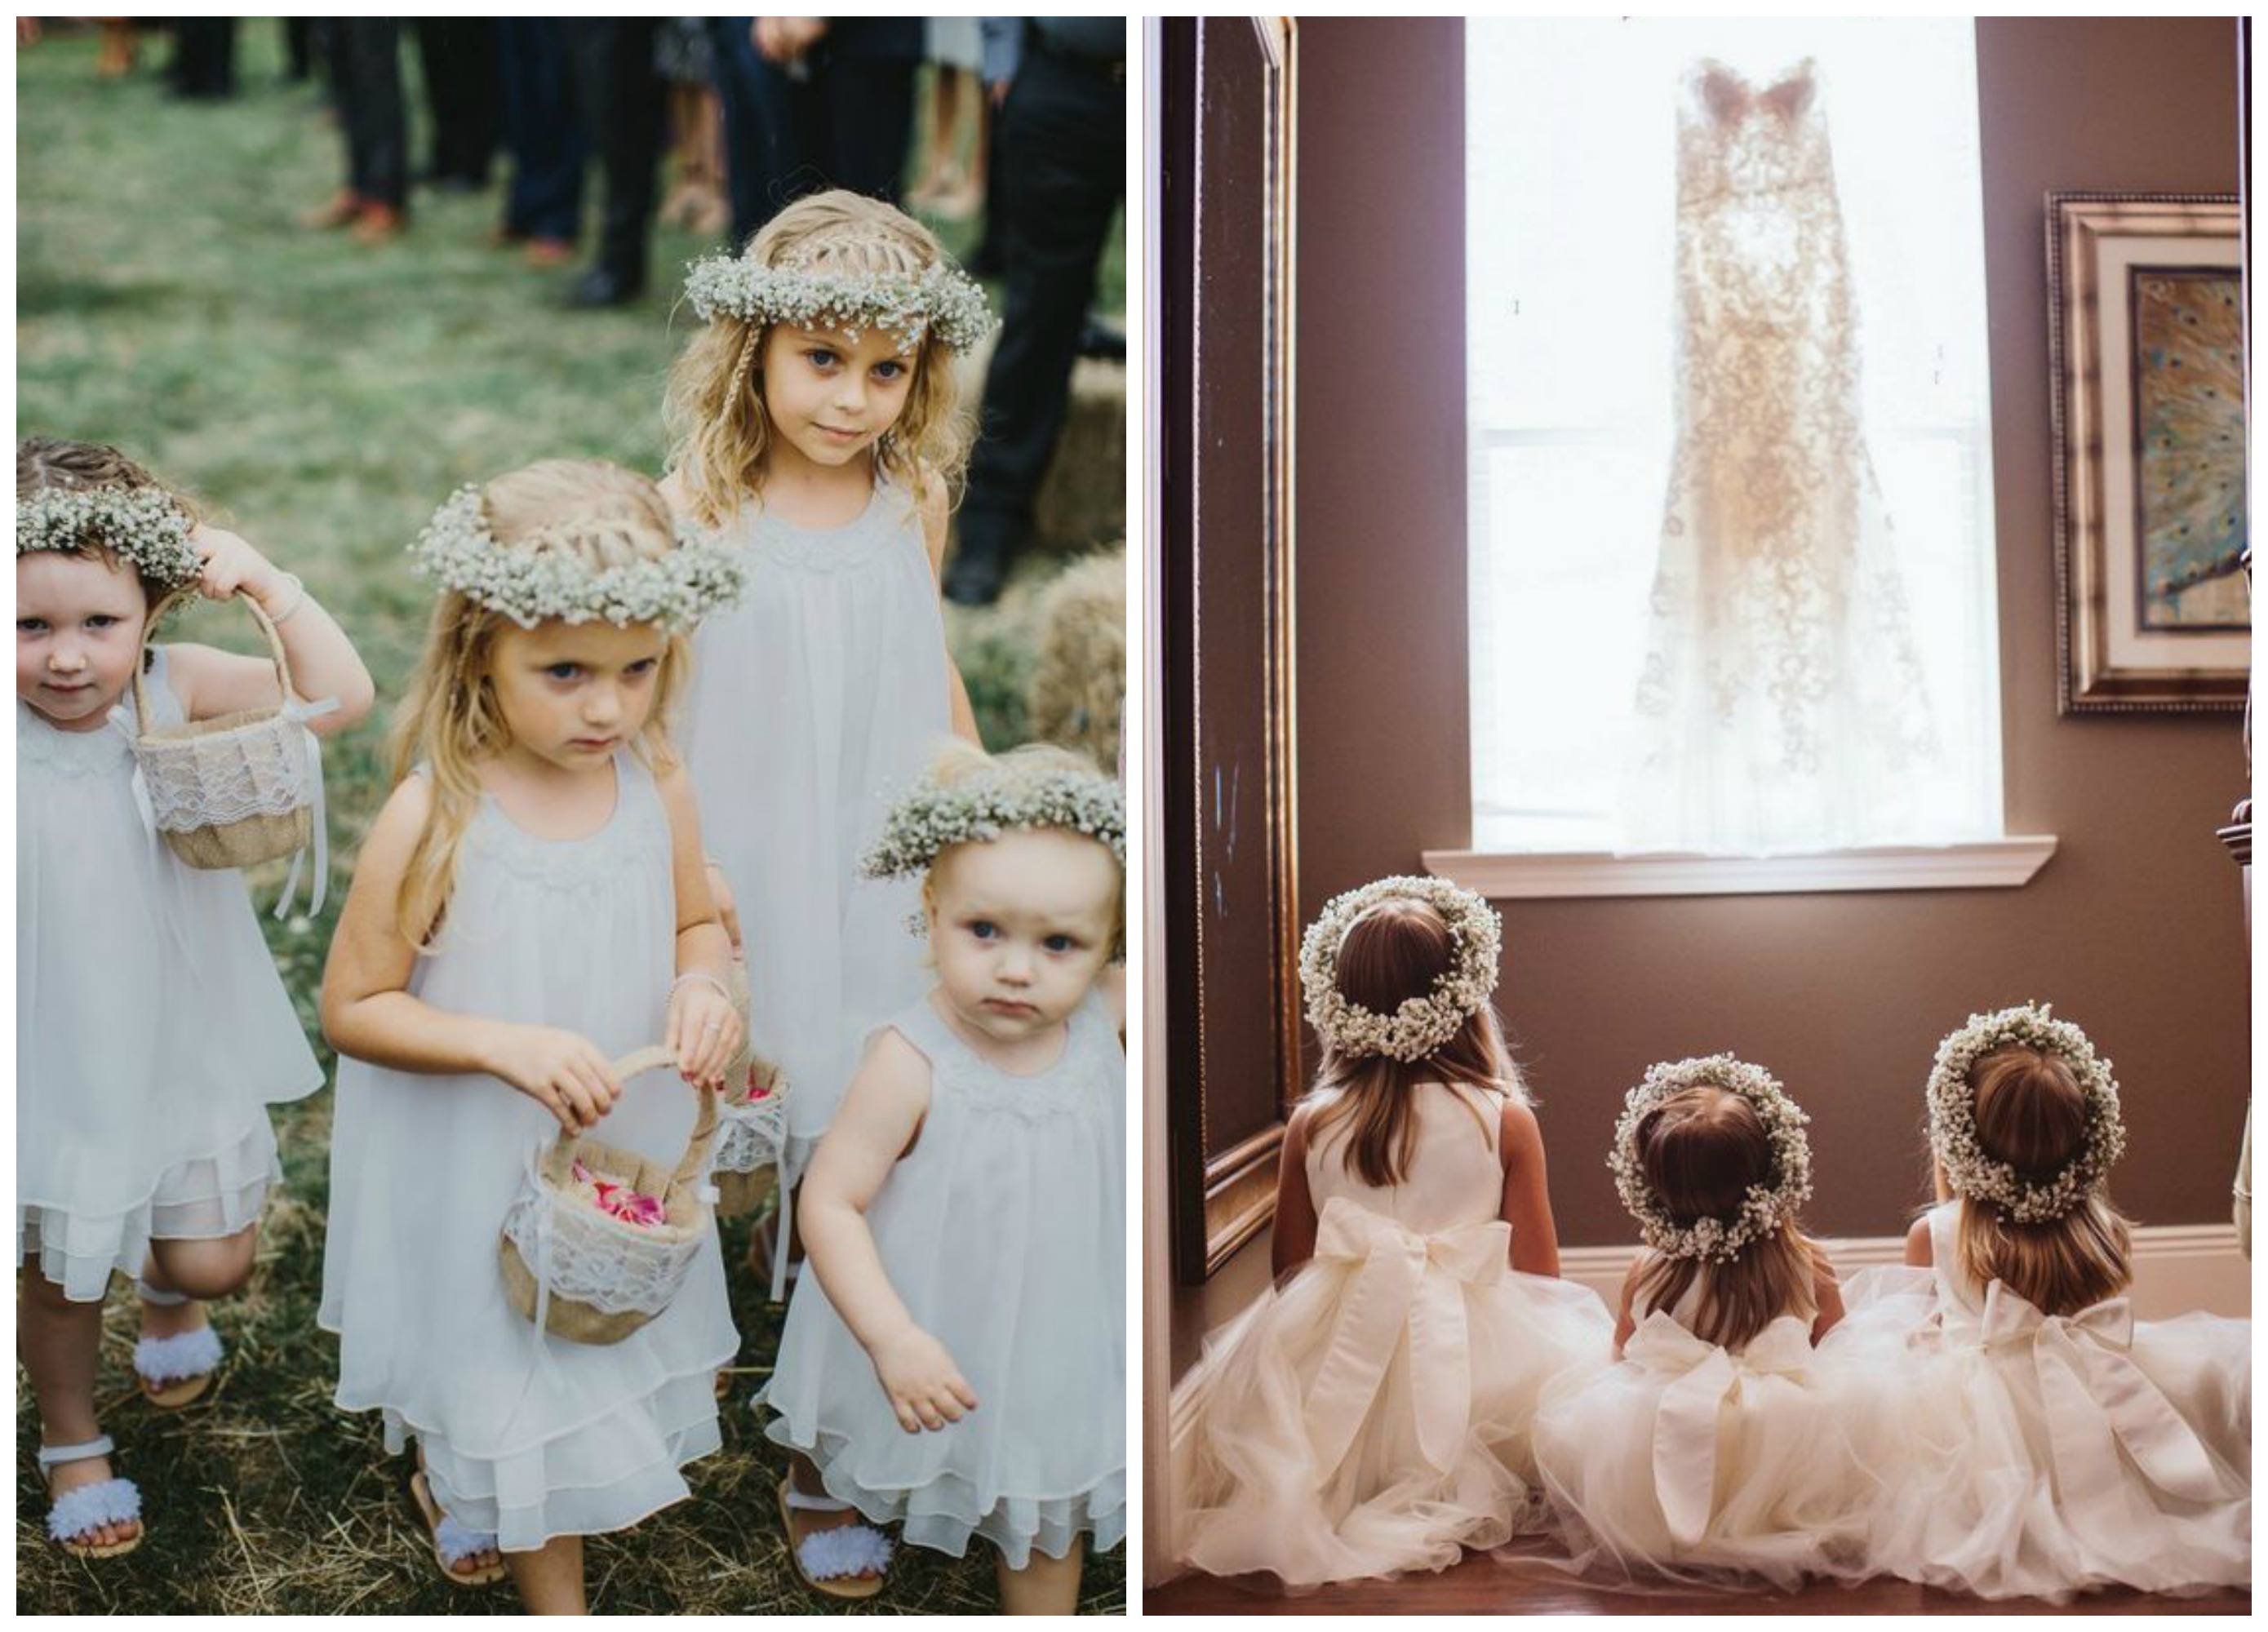 Baby's Breath Floral Crowns